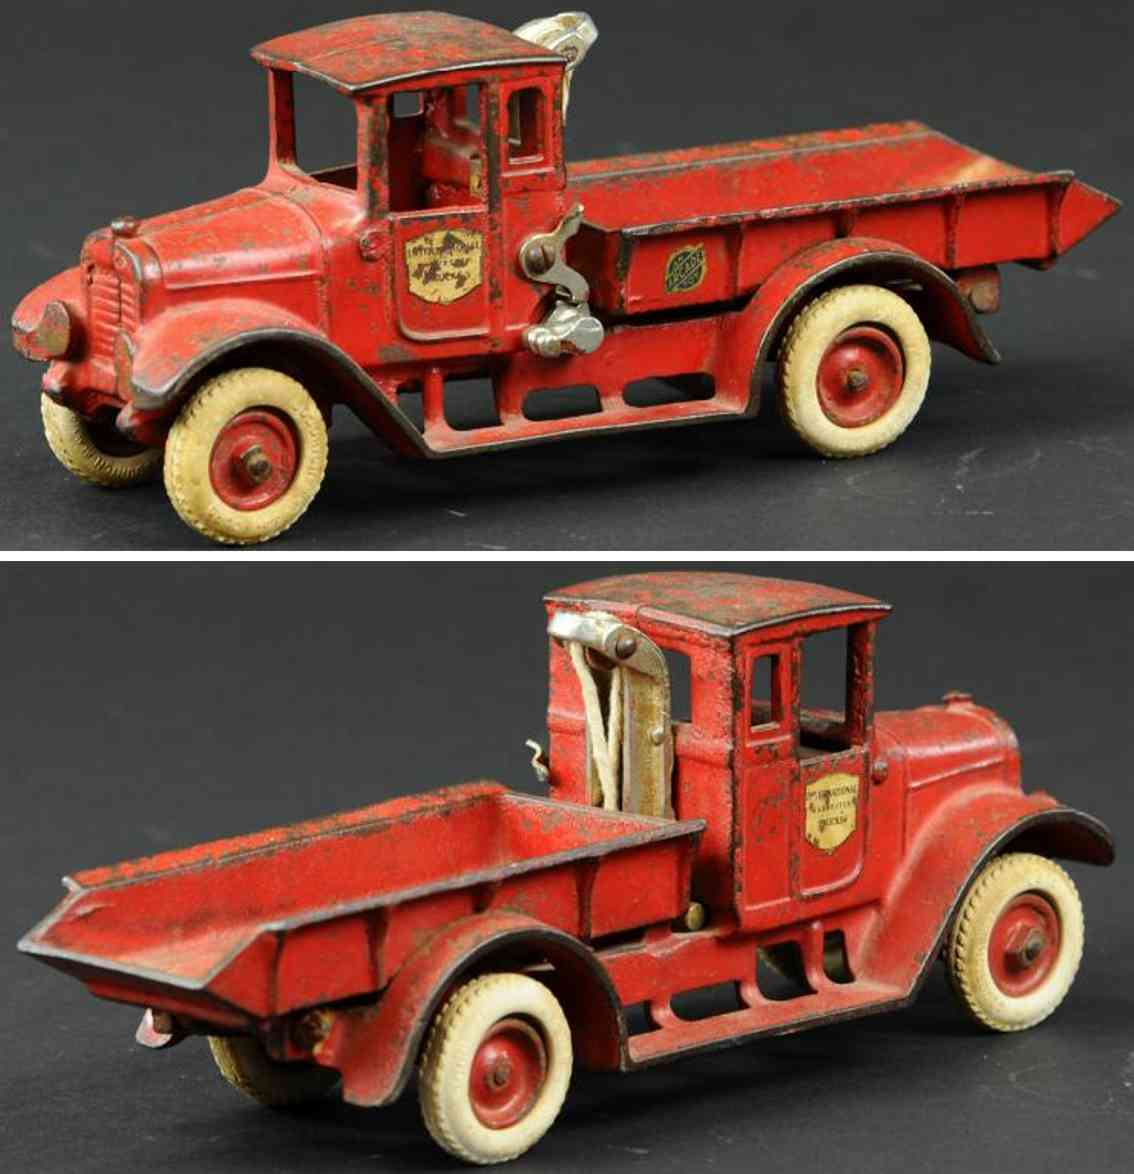 arcade cast iron toy ich baby dump truck red